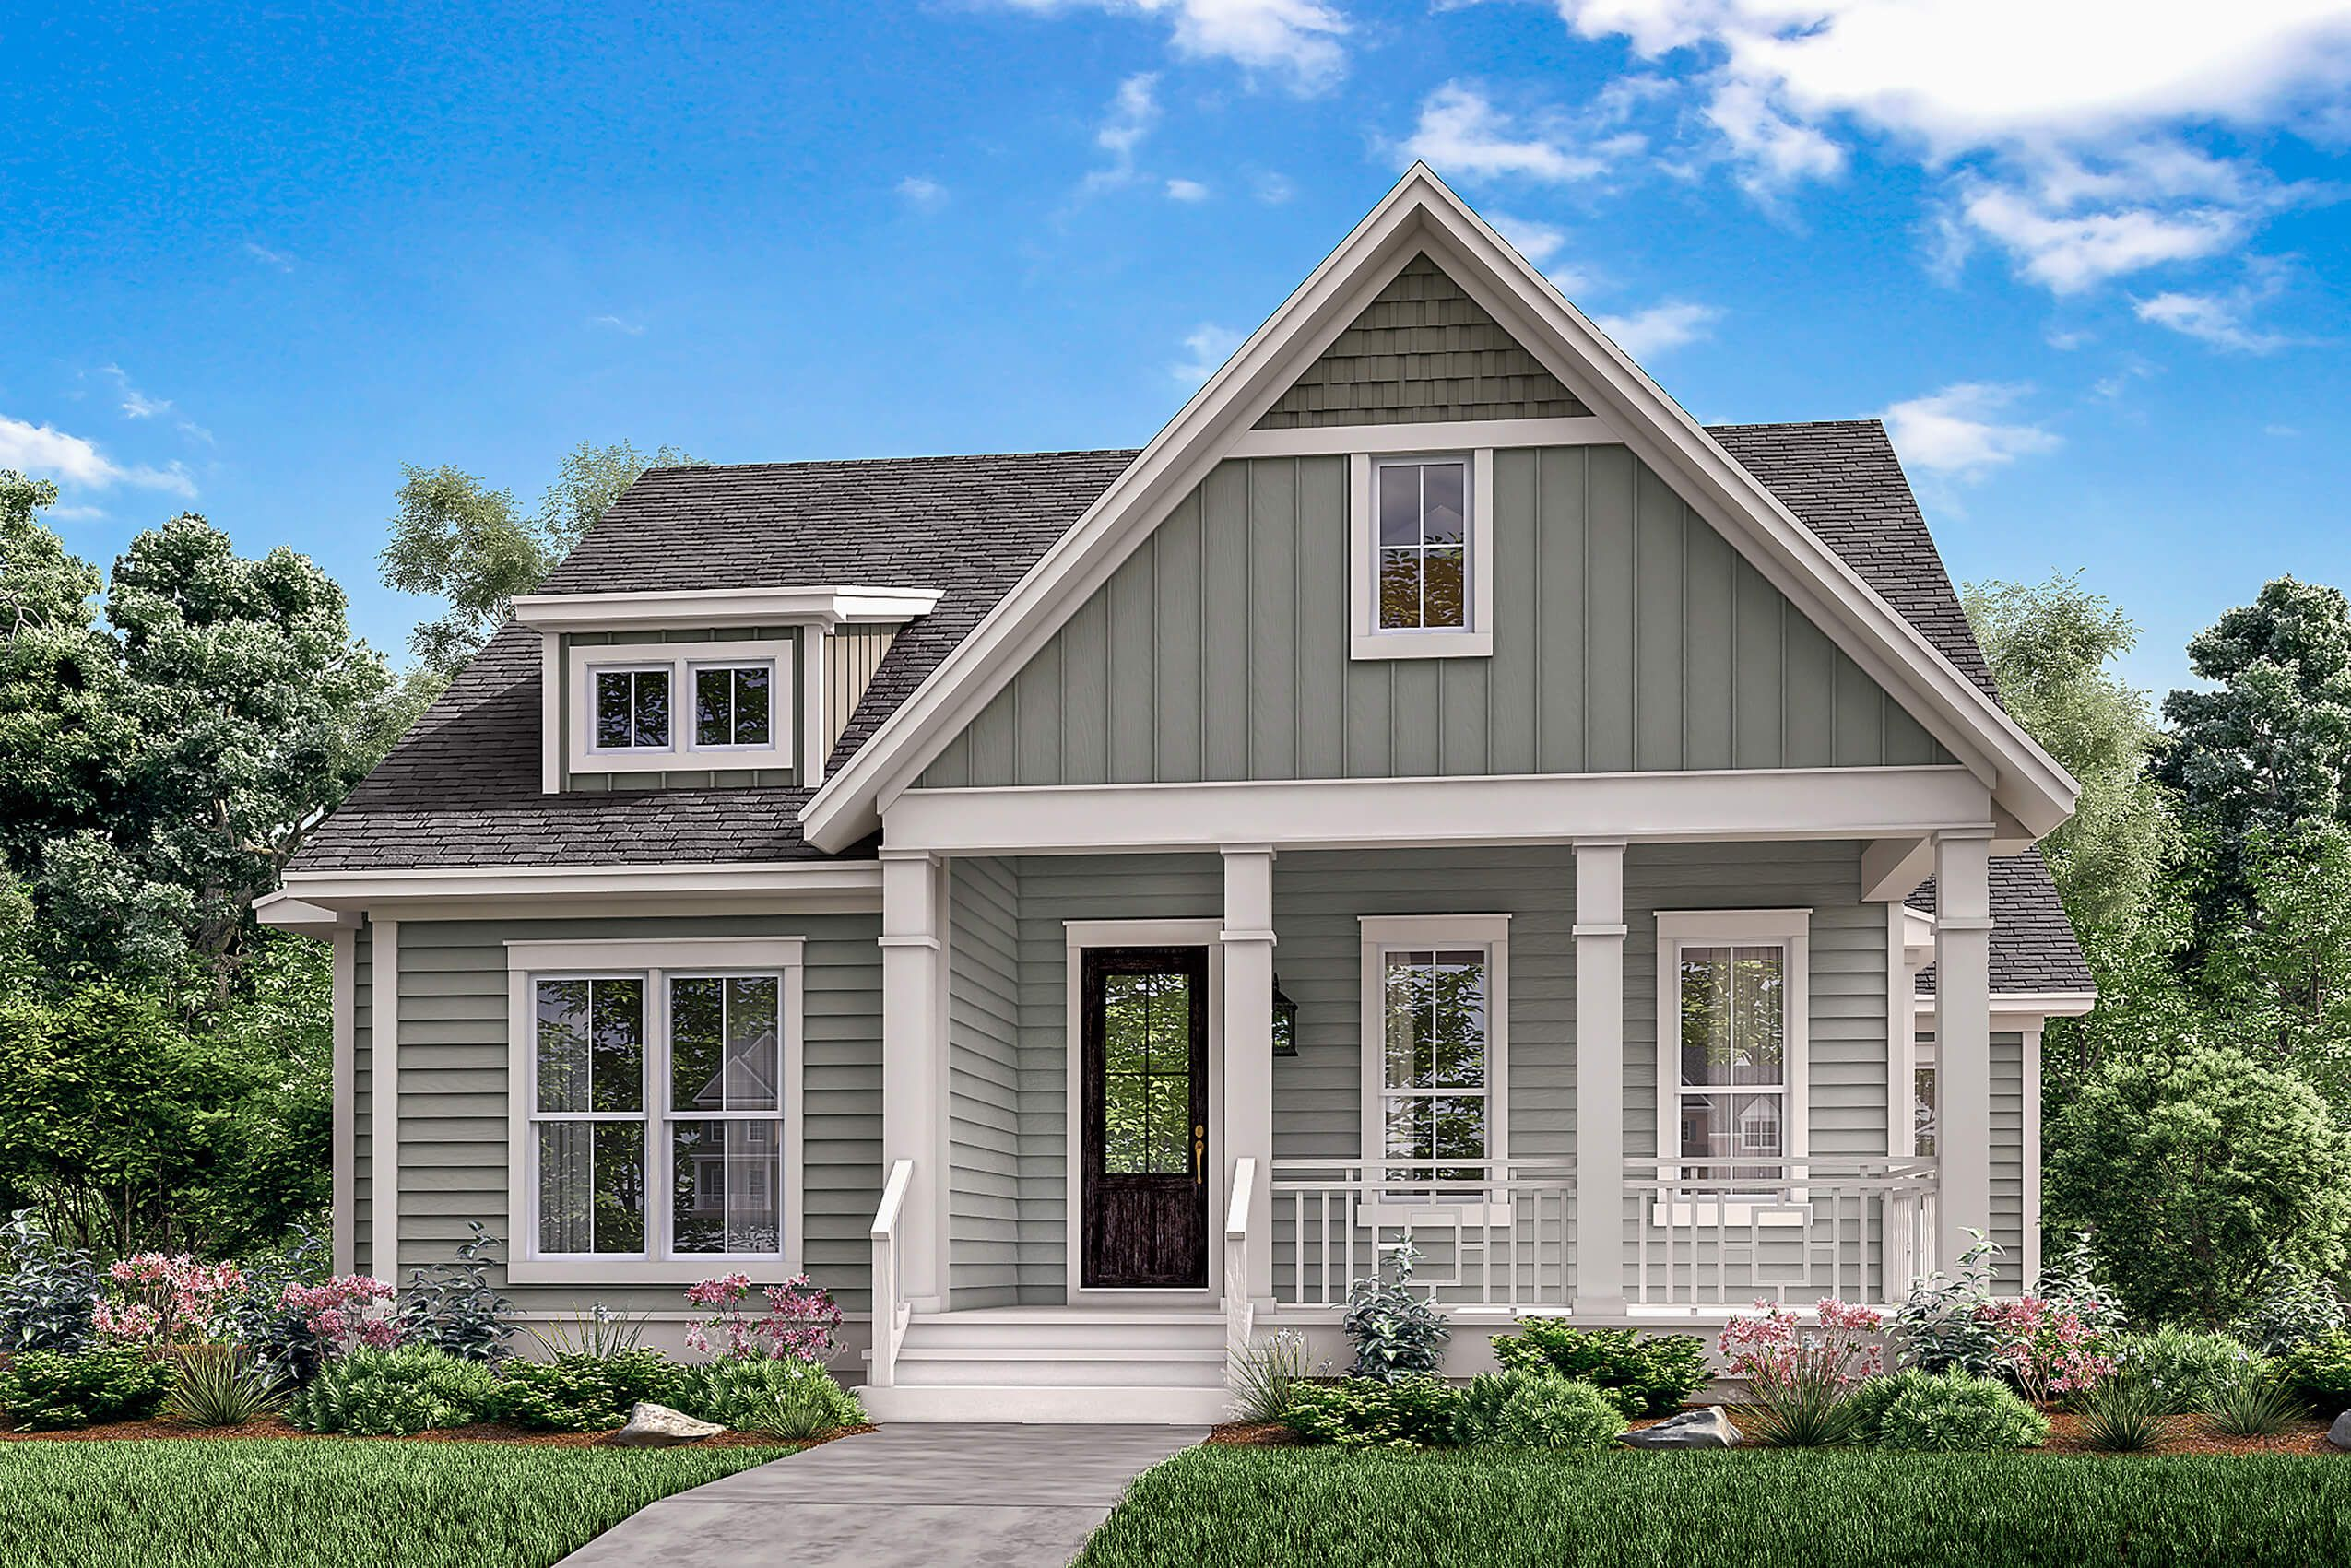 Small house plan home plan 142 - Front Elevation Of Craftsman Home Theplancollection House Plan 142 1165